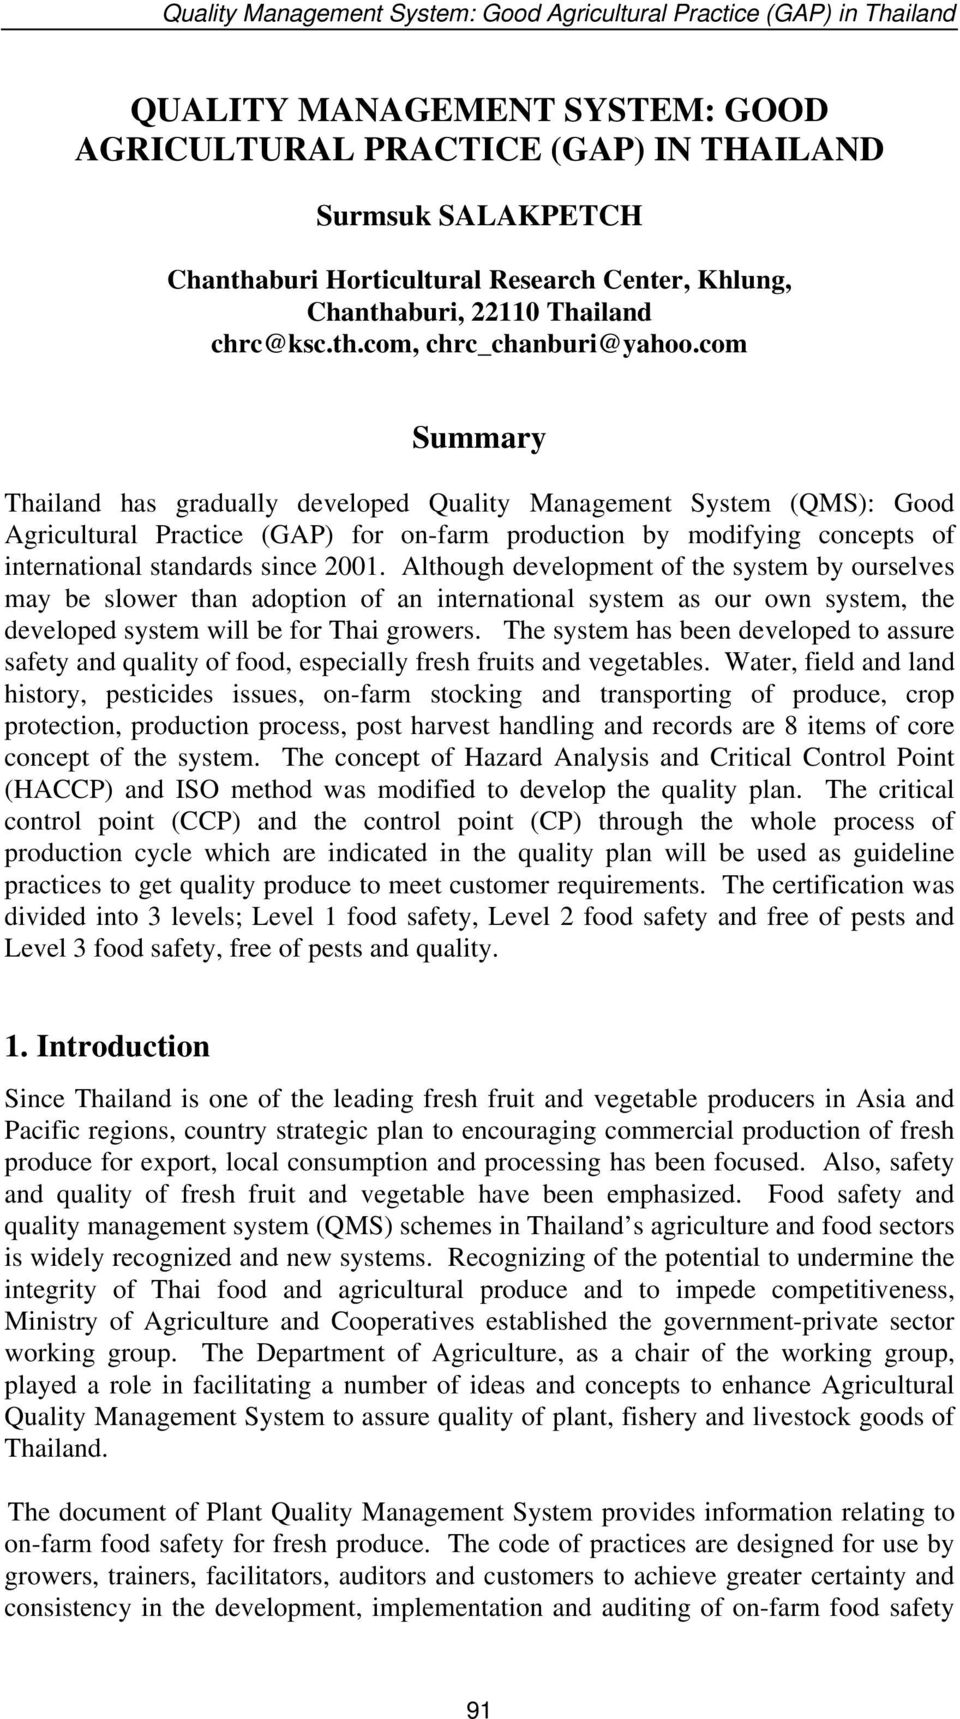 com Summary Thailand has gradually developed Quality Management System (QMS): Good Agricultural Practice (GAP) for on-farm production by modifying concepts of international standards since 2001.